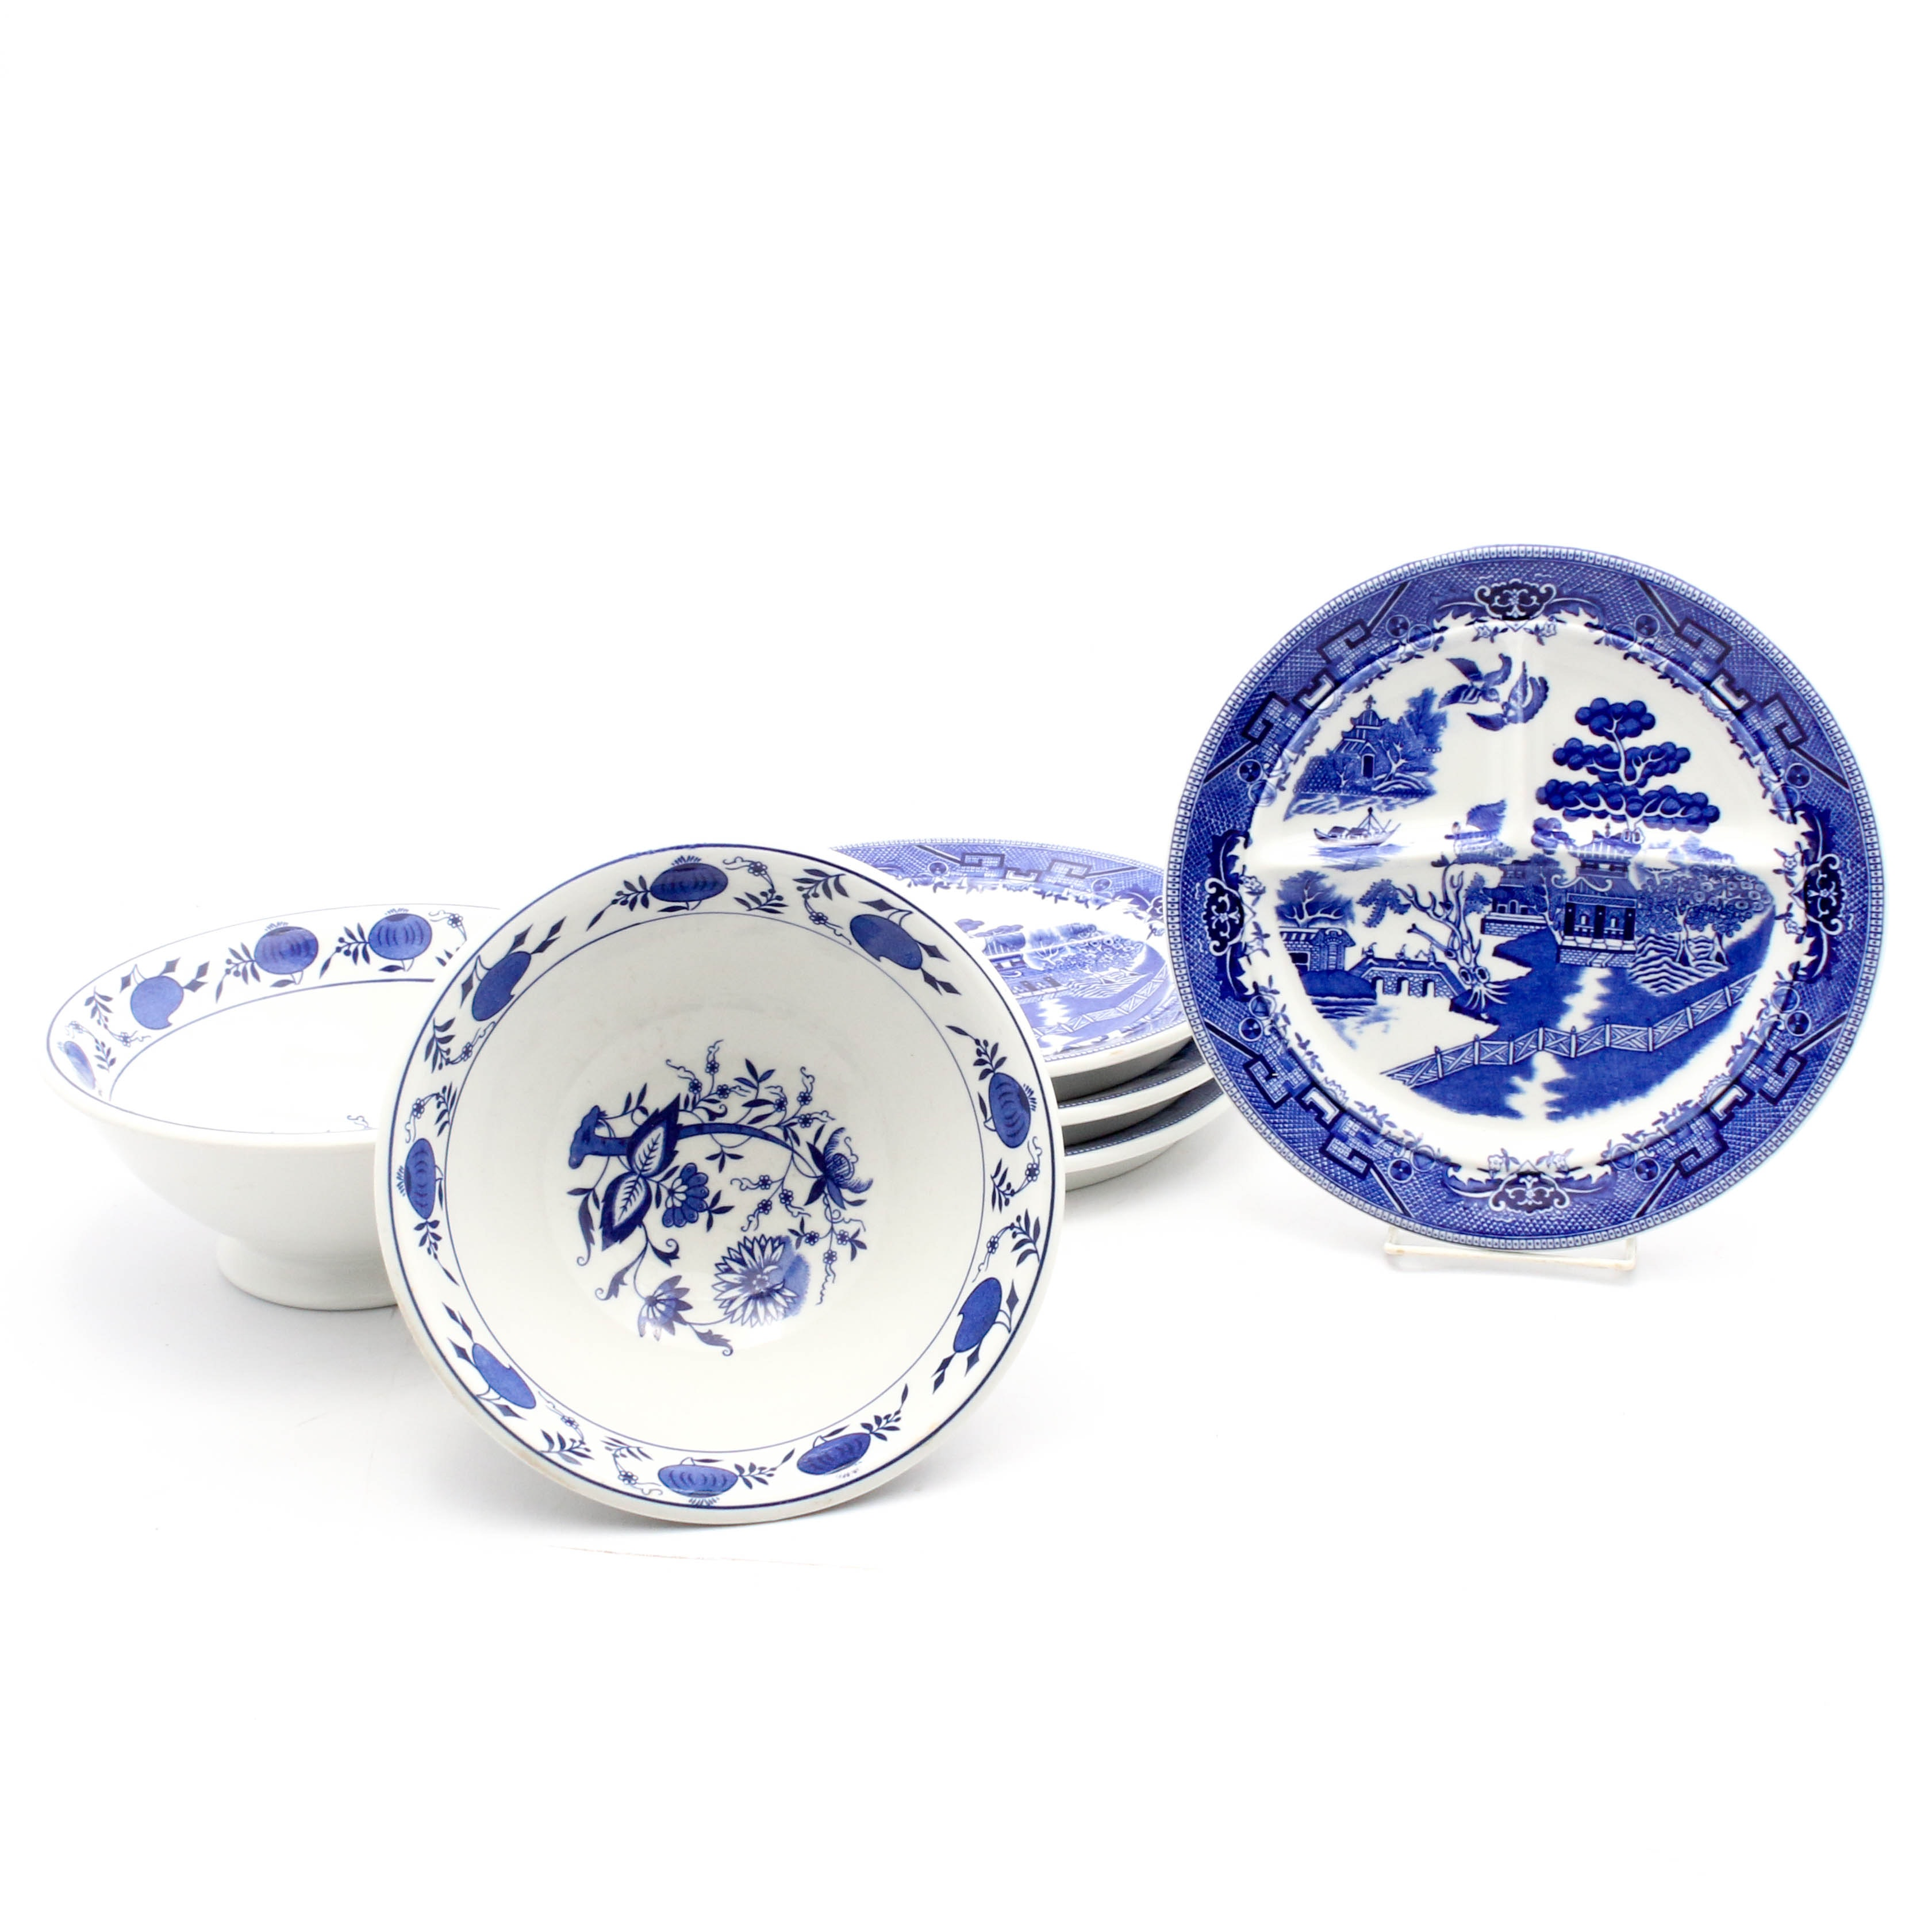 Blue Willow and Blue Onion Transferware, Vintage